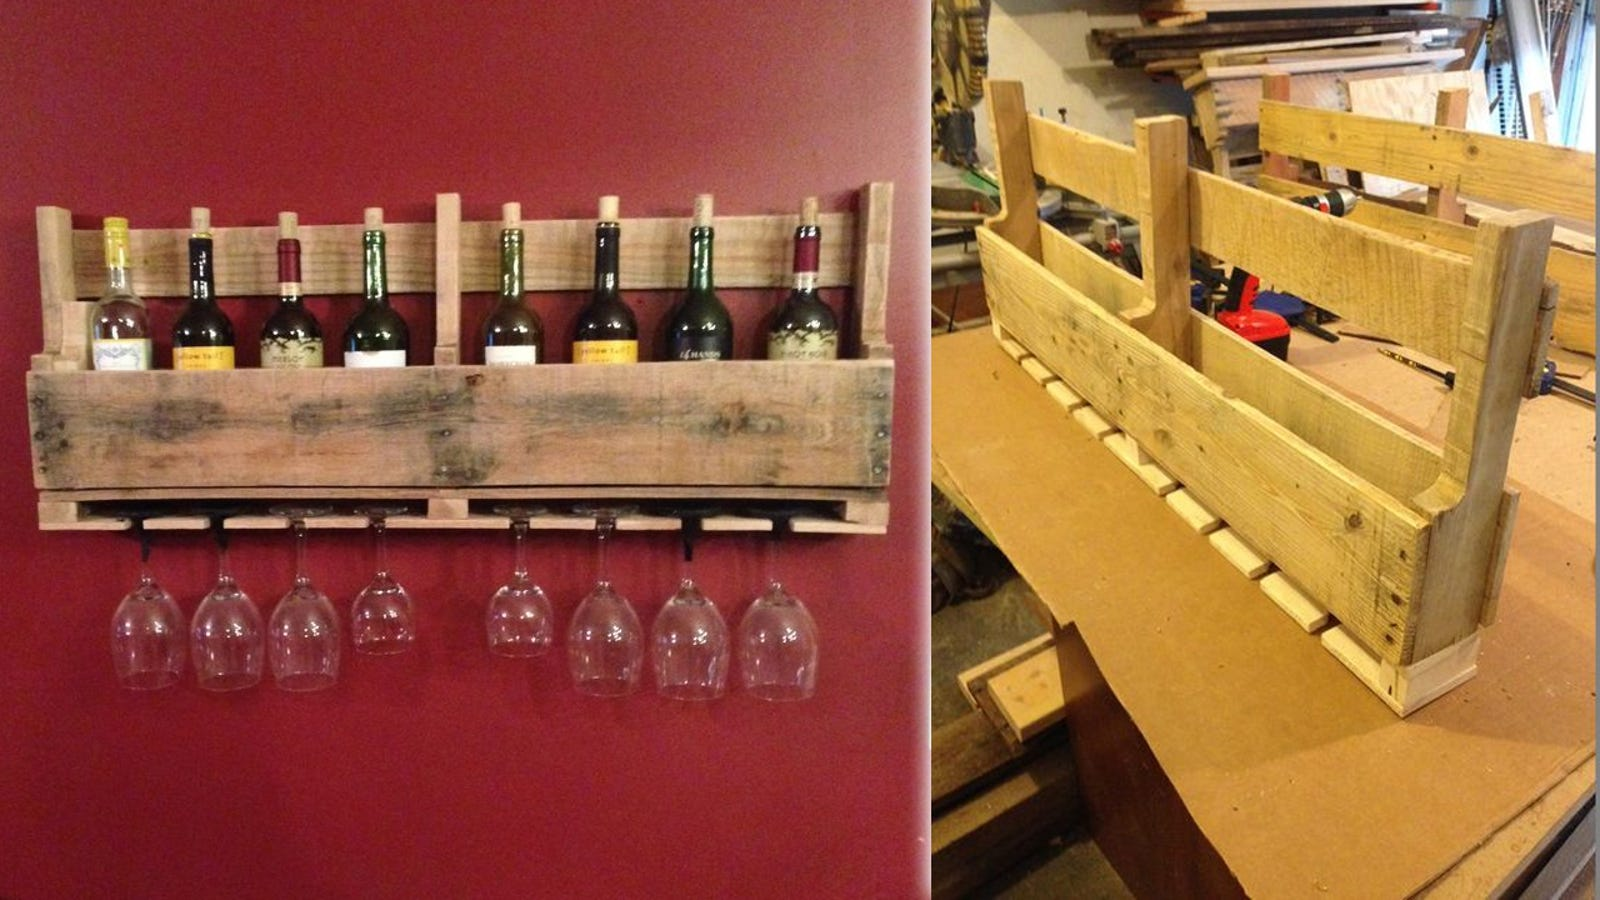 Build This Pallet Wine Rack To Store Your Favorite Bottles